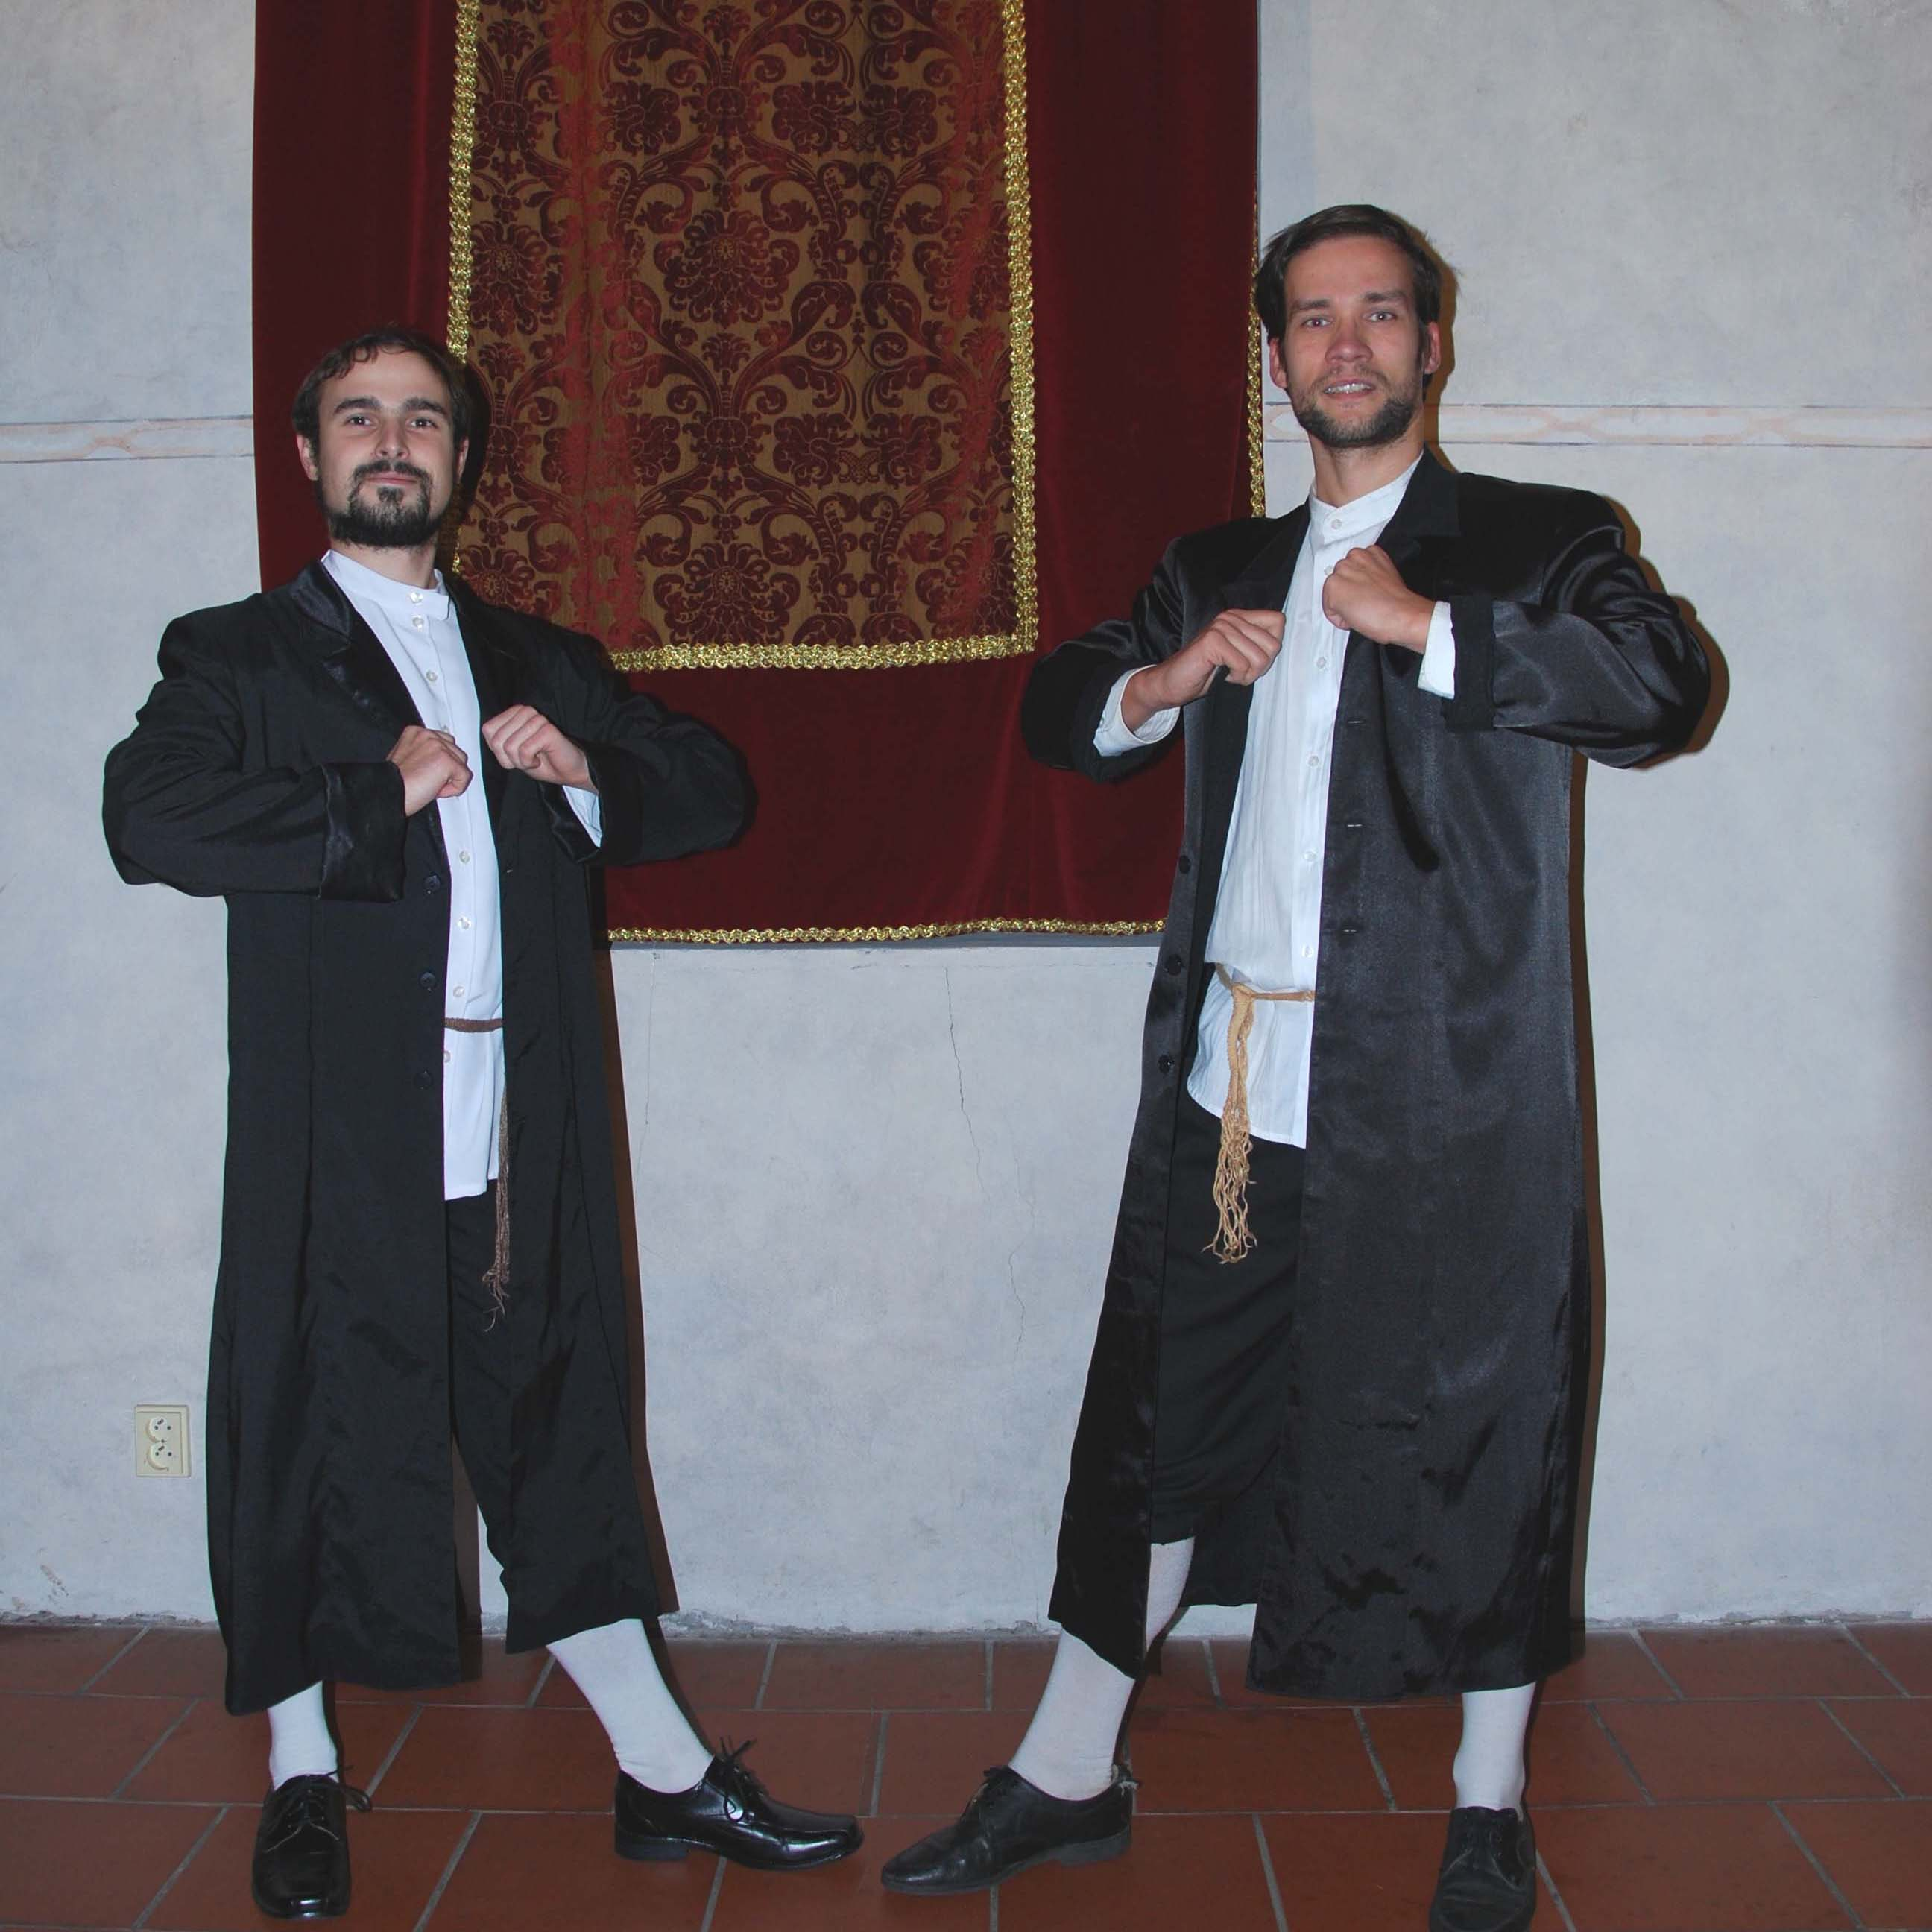 Traditional Jewish dancing